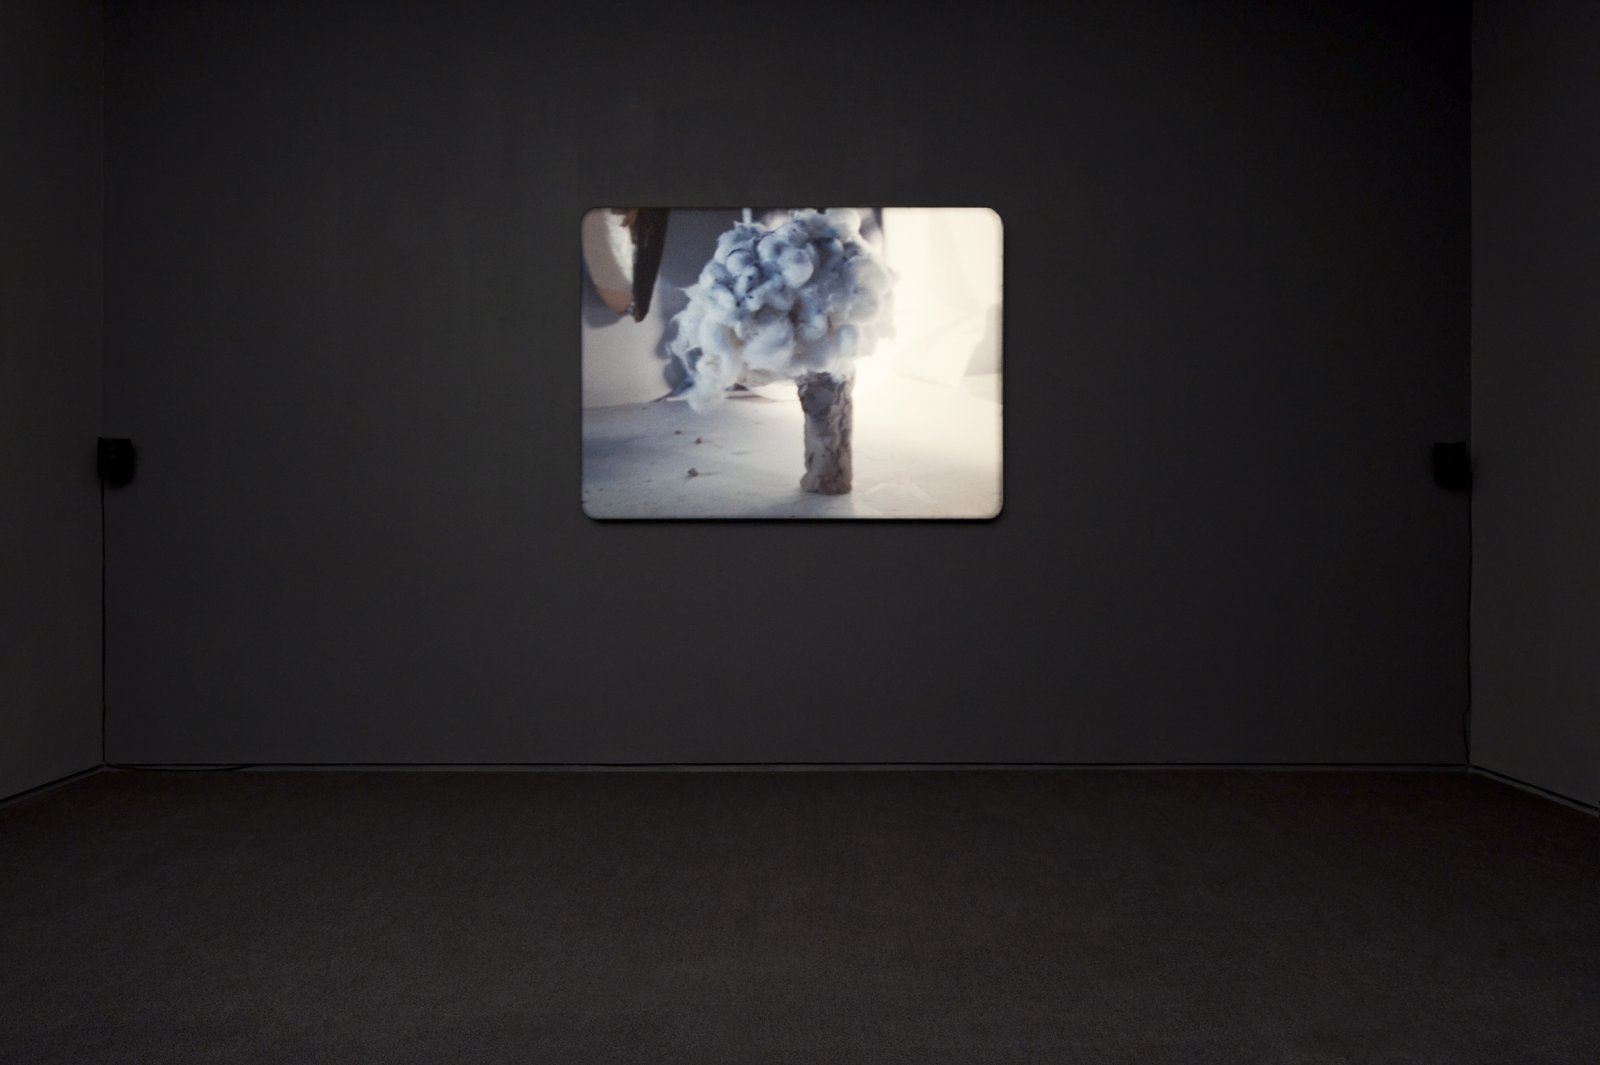 ​Julia Feyrer, The artist's studio, 2010, colour 16mm film loop with non-synchronized sound, 5 minutes, 5 seconds by Julia Feyrer